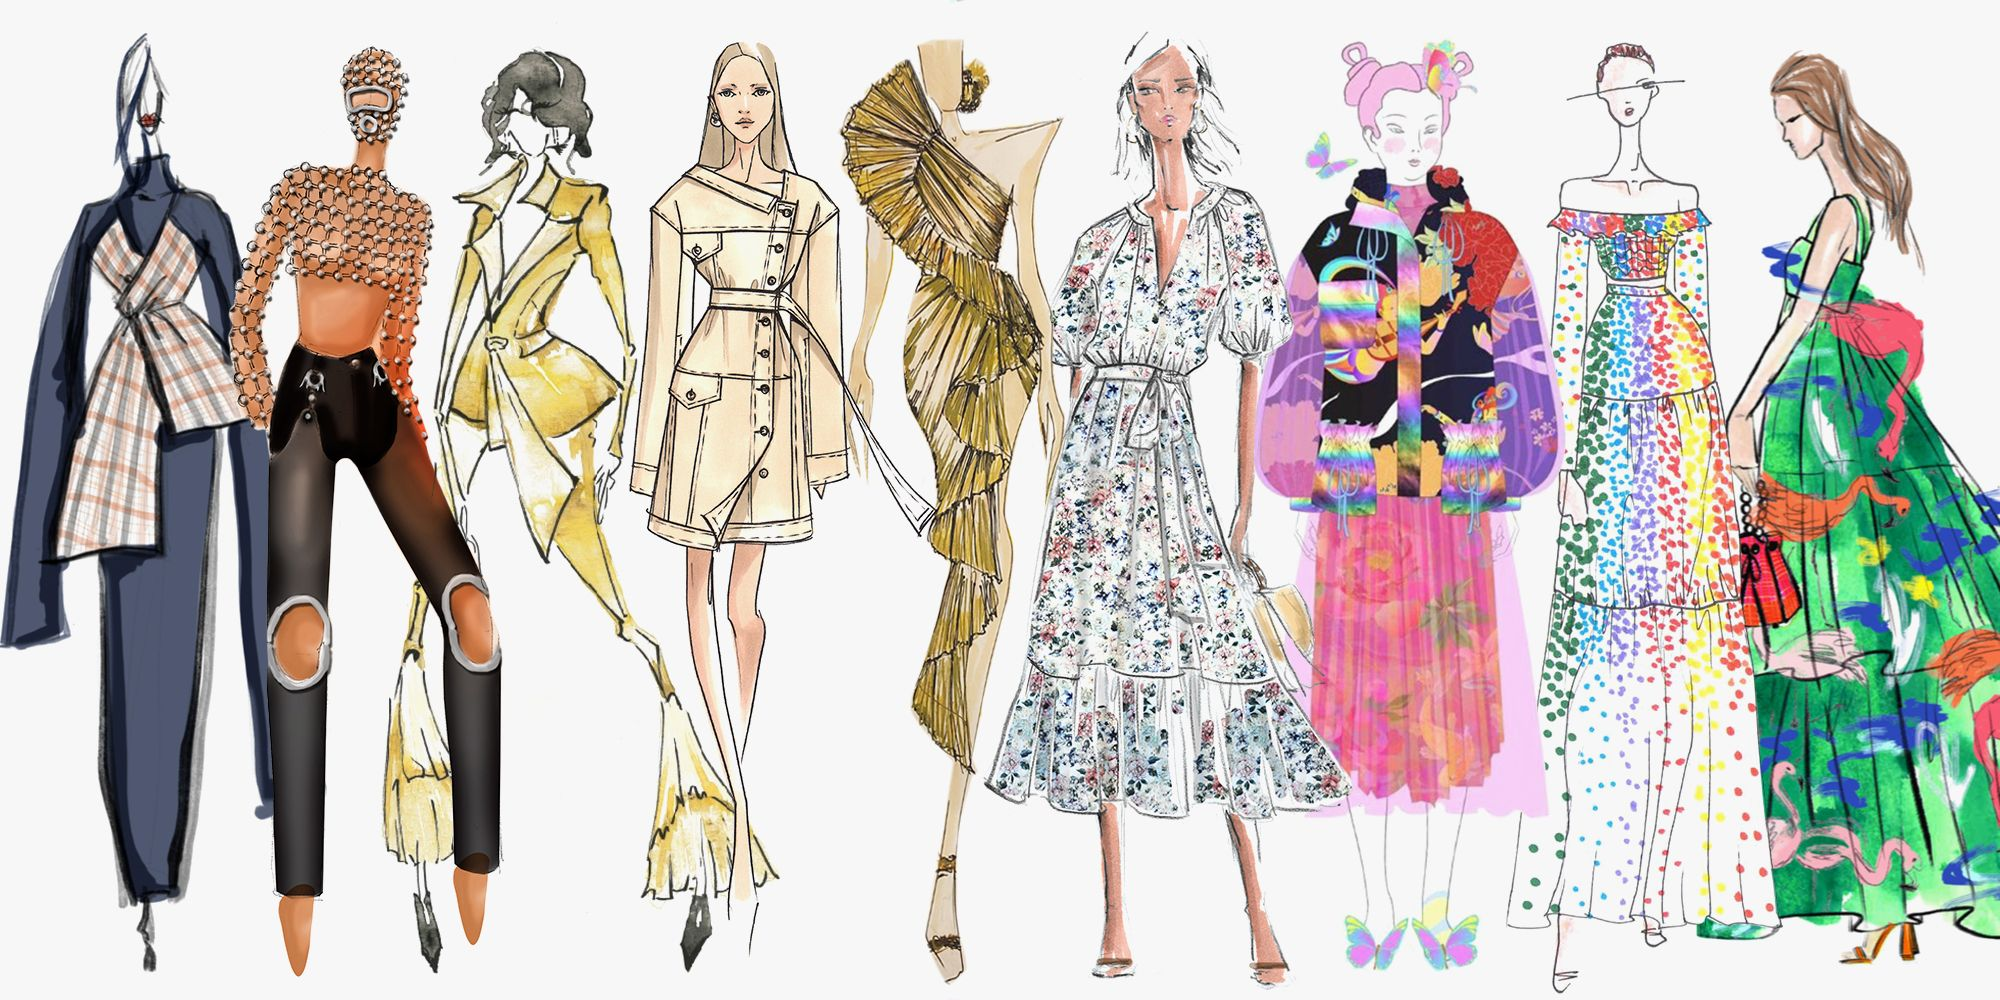 6 Designers on Their NYFW Collection Inspiration